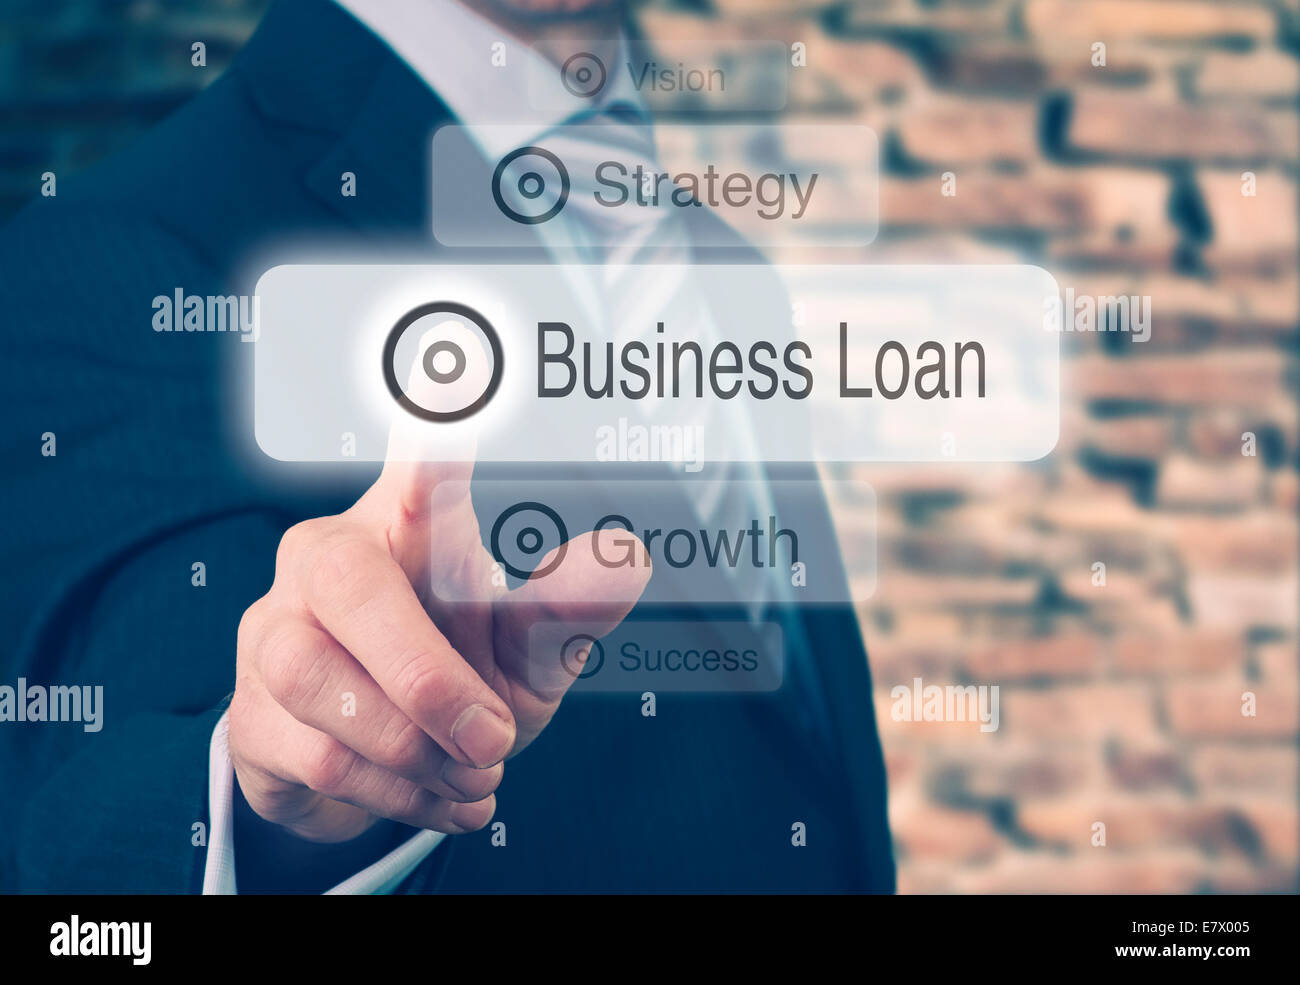 Businessman pressing a Business Loan concept button. - Stock Image